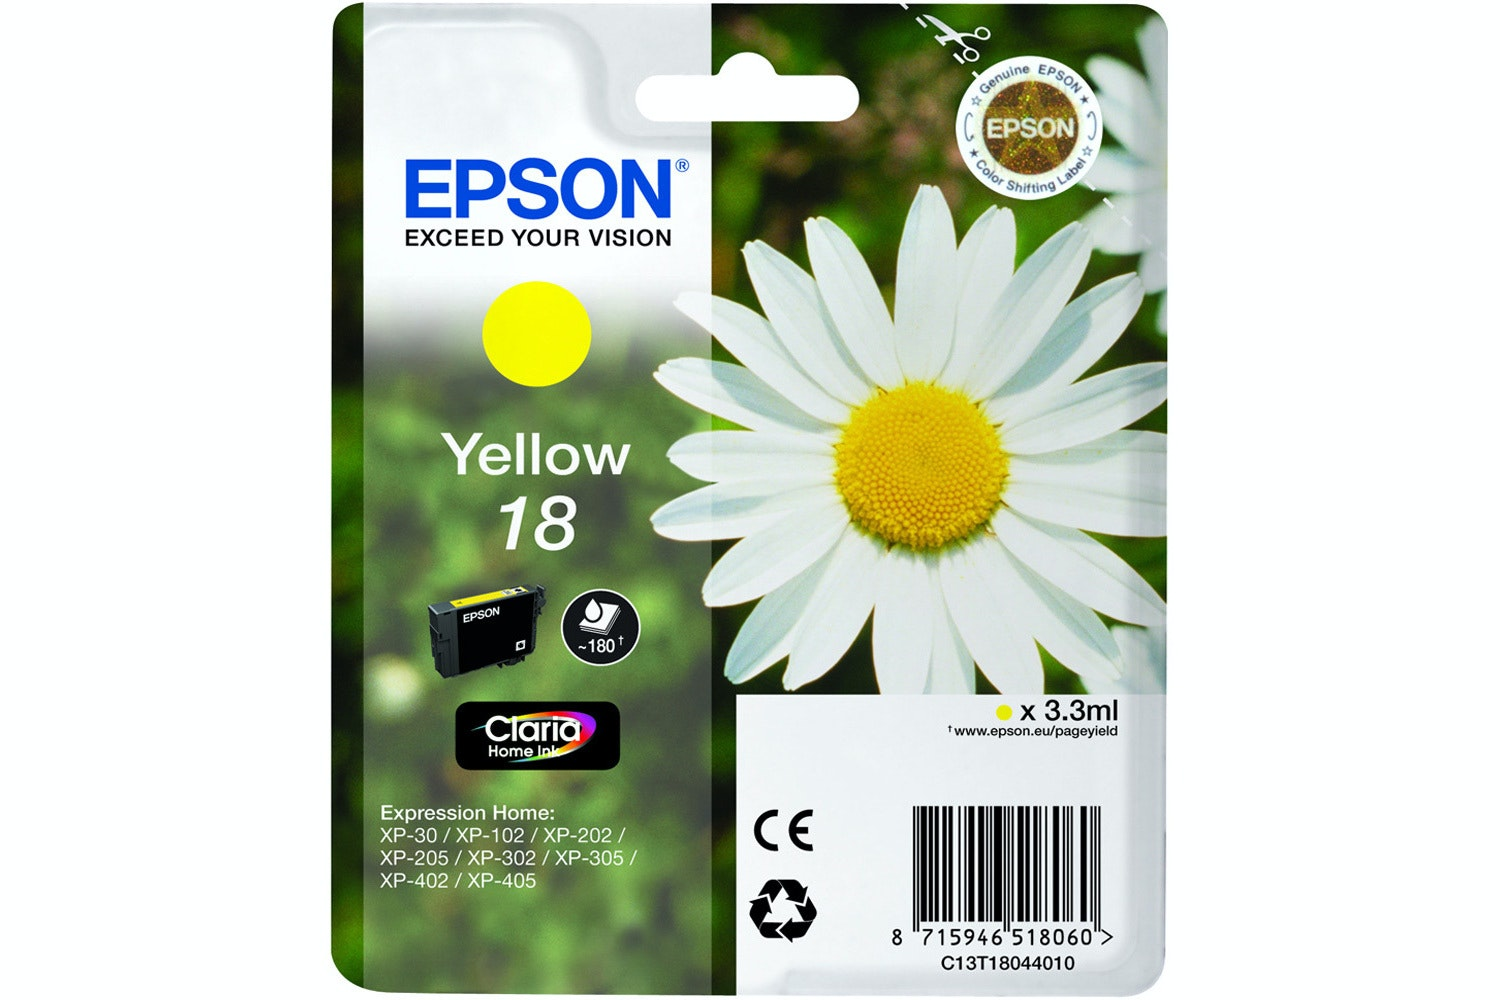 Epson Daisy Ink Yellow